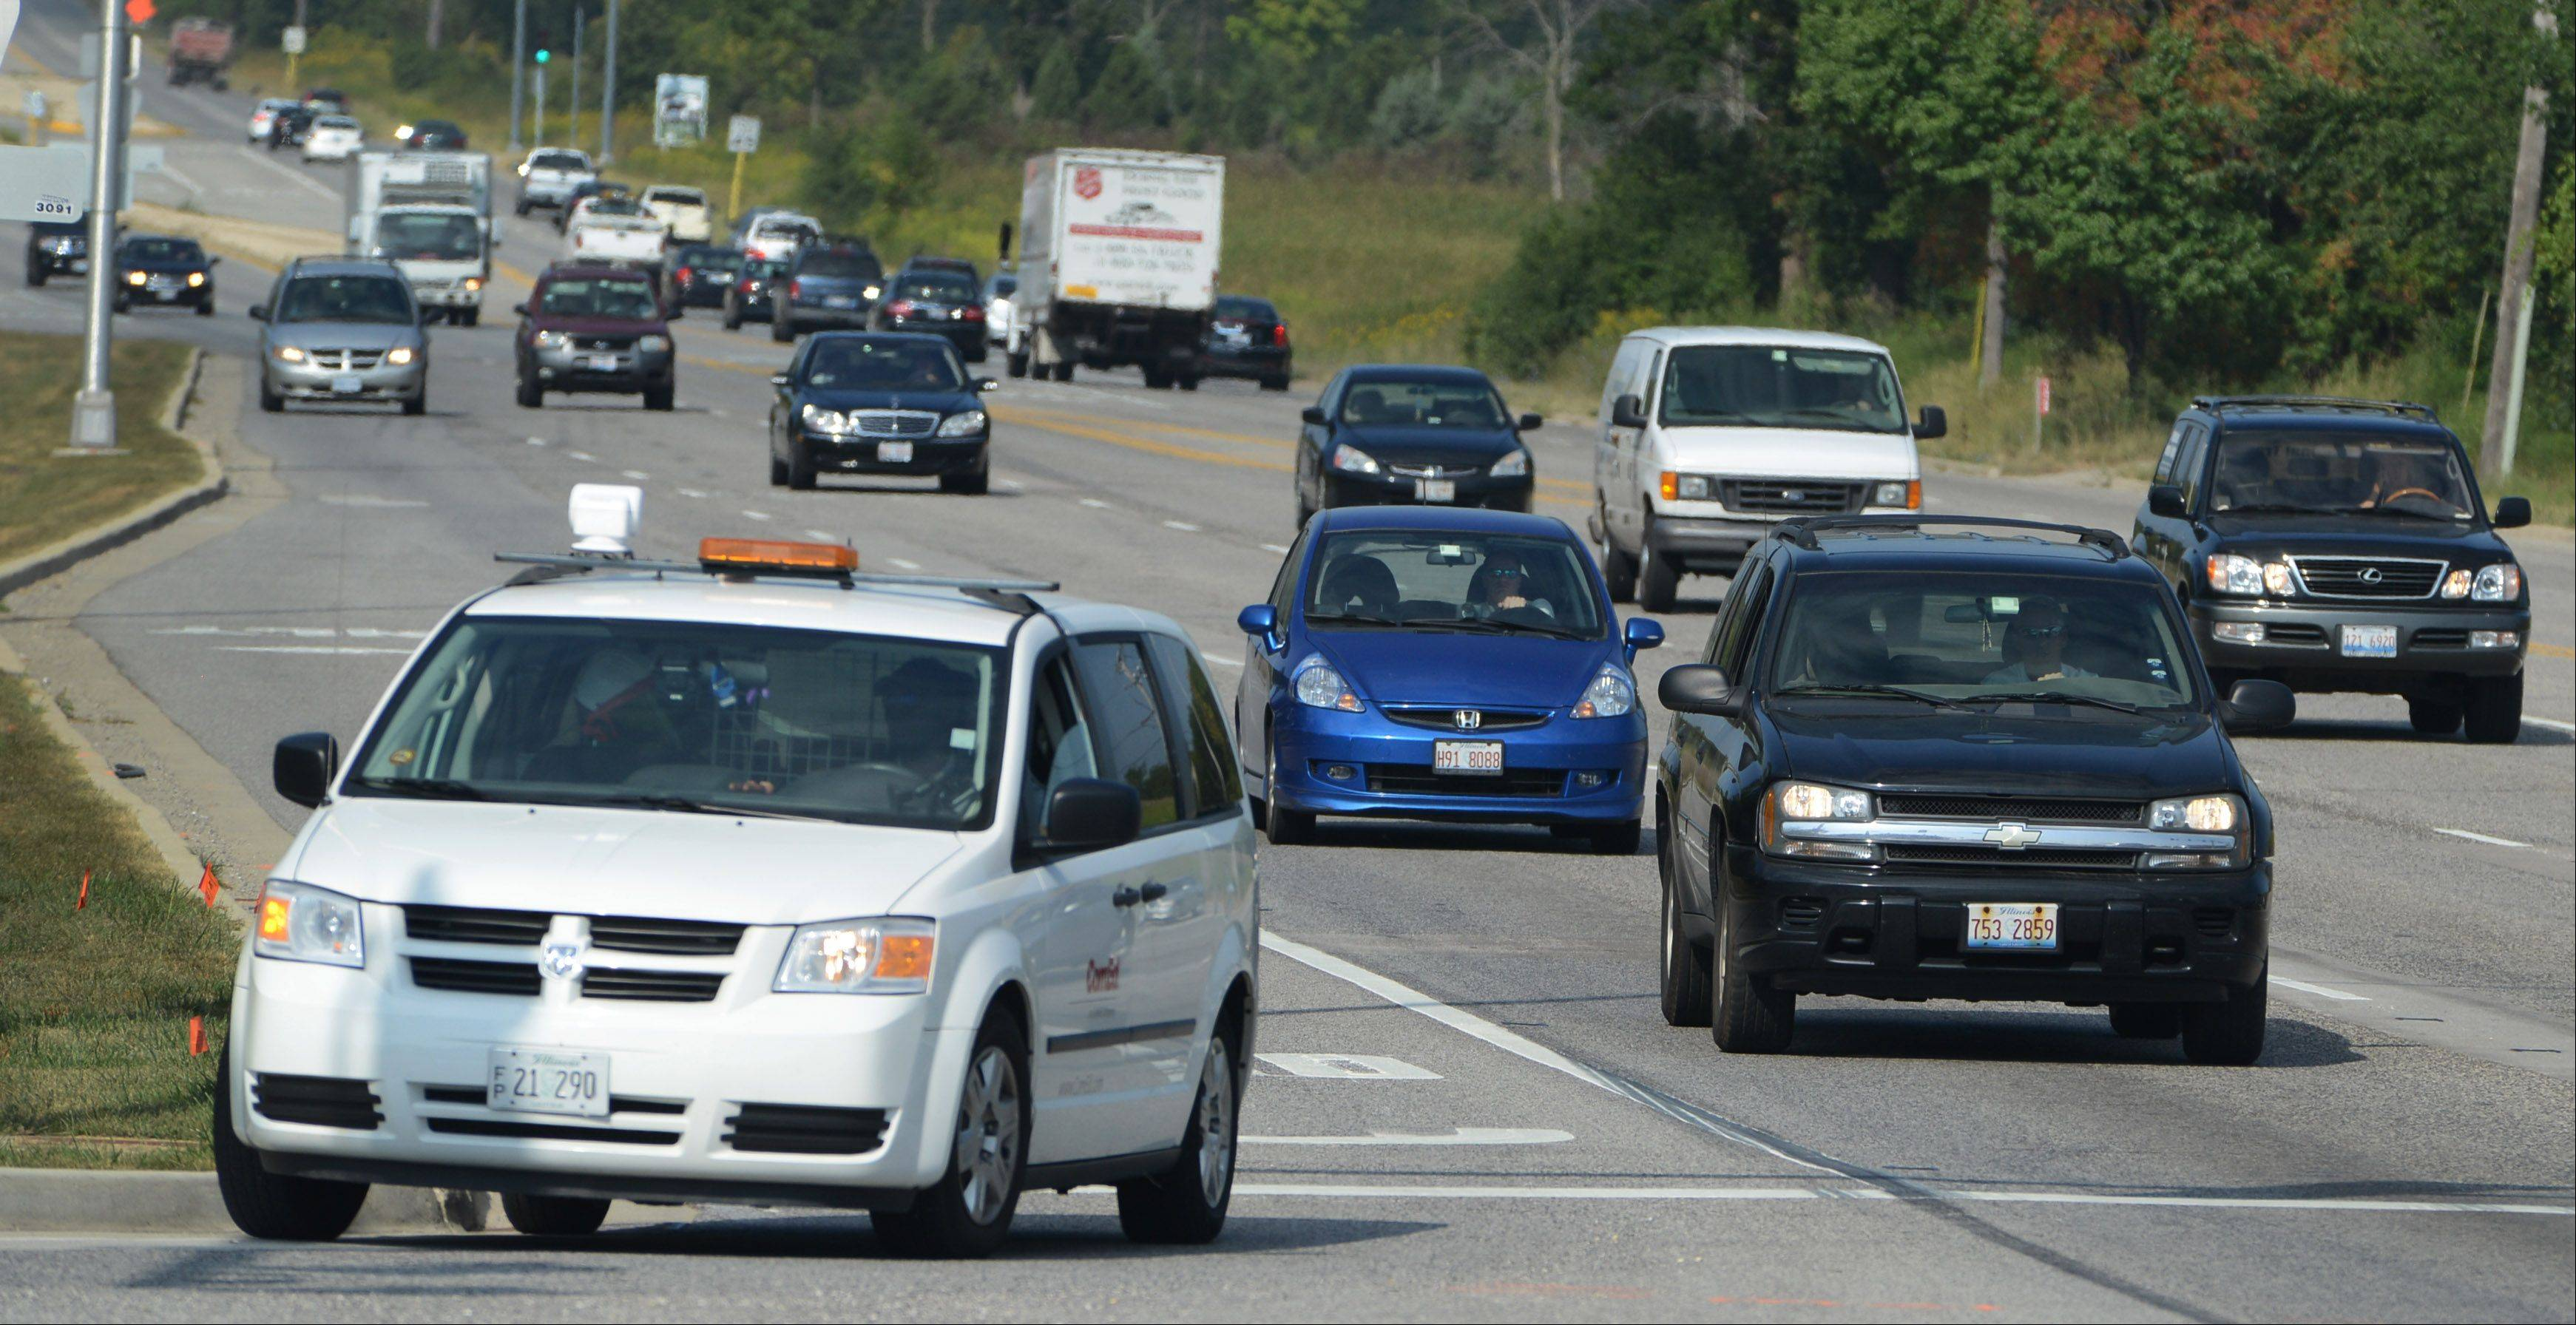 Lake Forest Deputy Police Chief Karl Walldorf says proximity of BMW Championship parking to the Tri-State Tollway should keep significant traffic woes from developing on Route 60 next week. Golf fans will follow signs west from the tollway on Route 60 to parking on W.W. Grainger Inc. farmland.